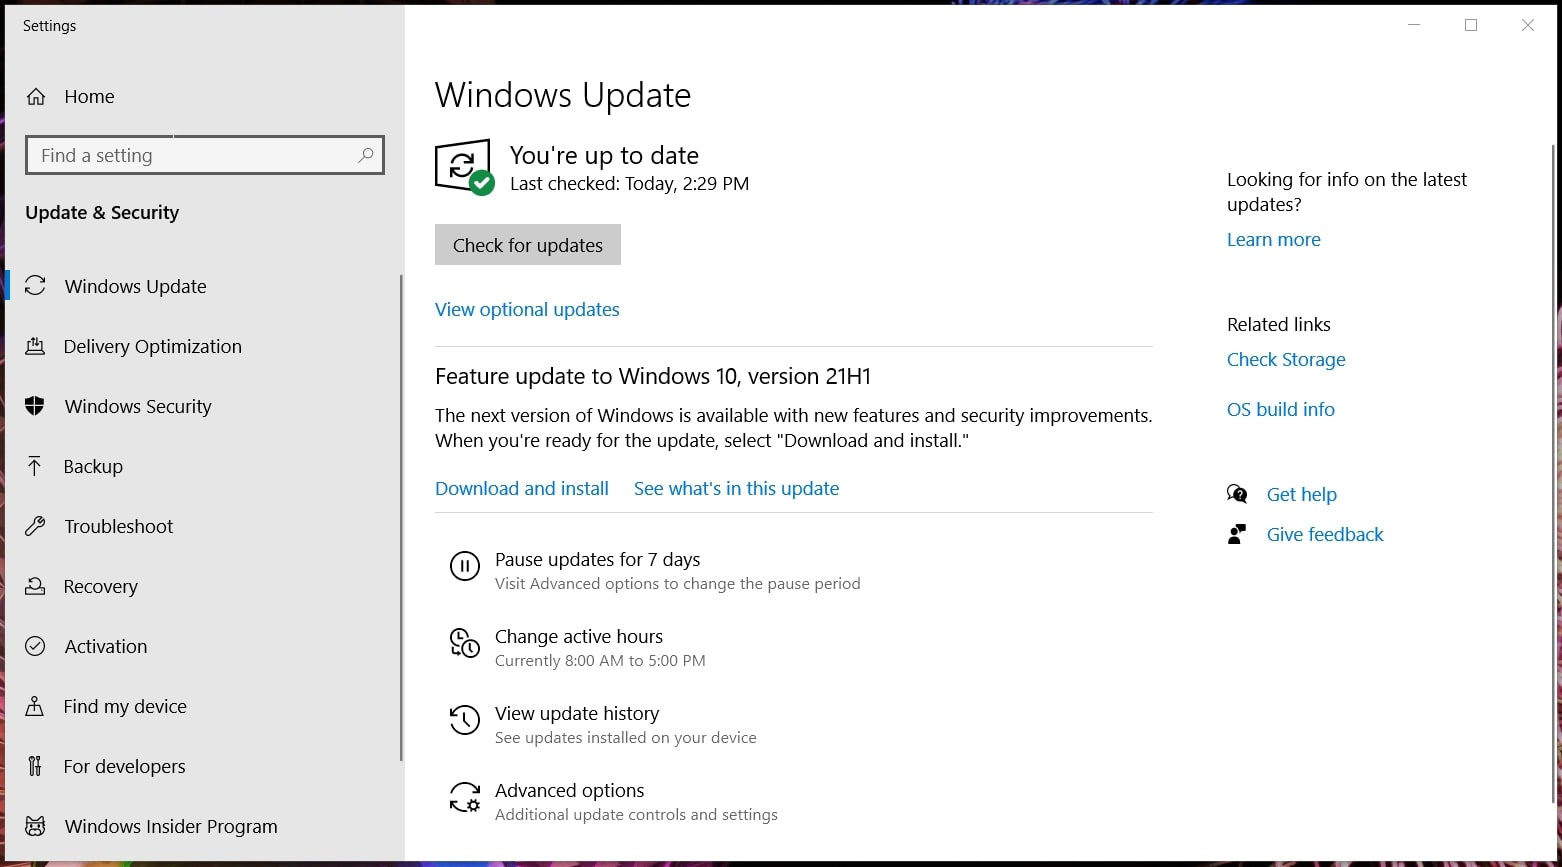 The Pause updates button in Windows 10